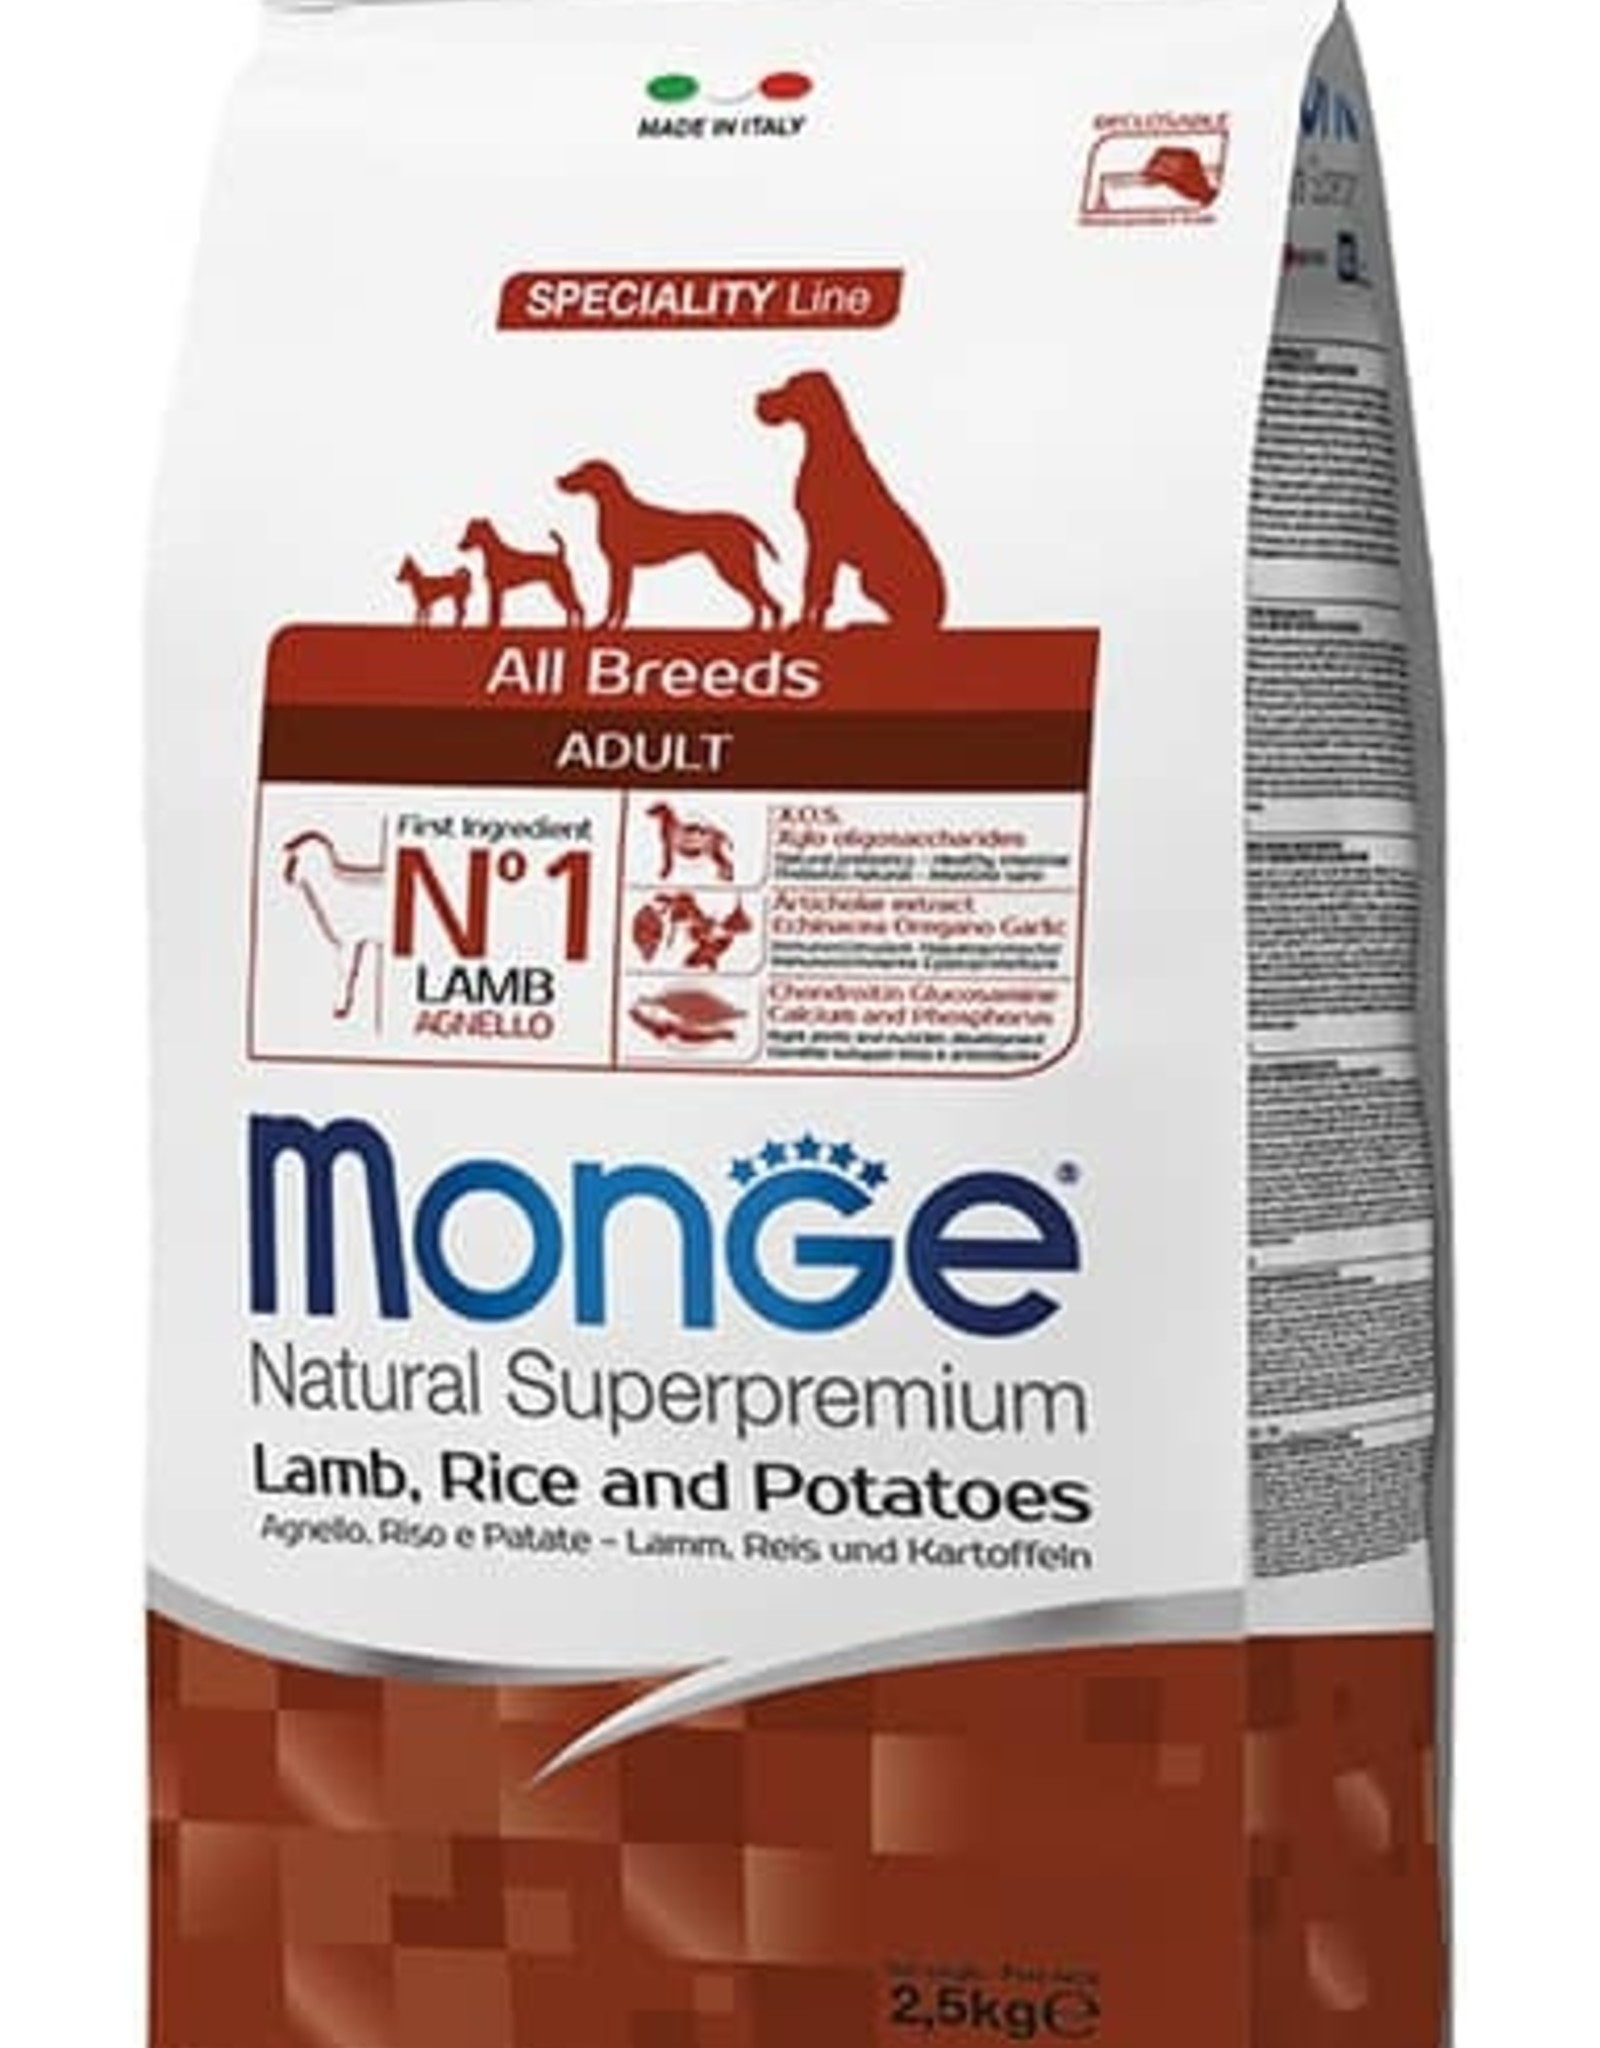 Monge Specialty line All Breeds Adult Lamb, Rice & Potatoes